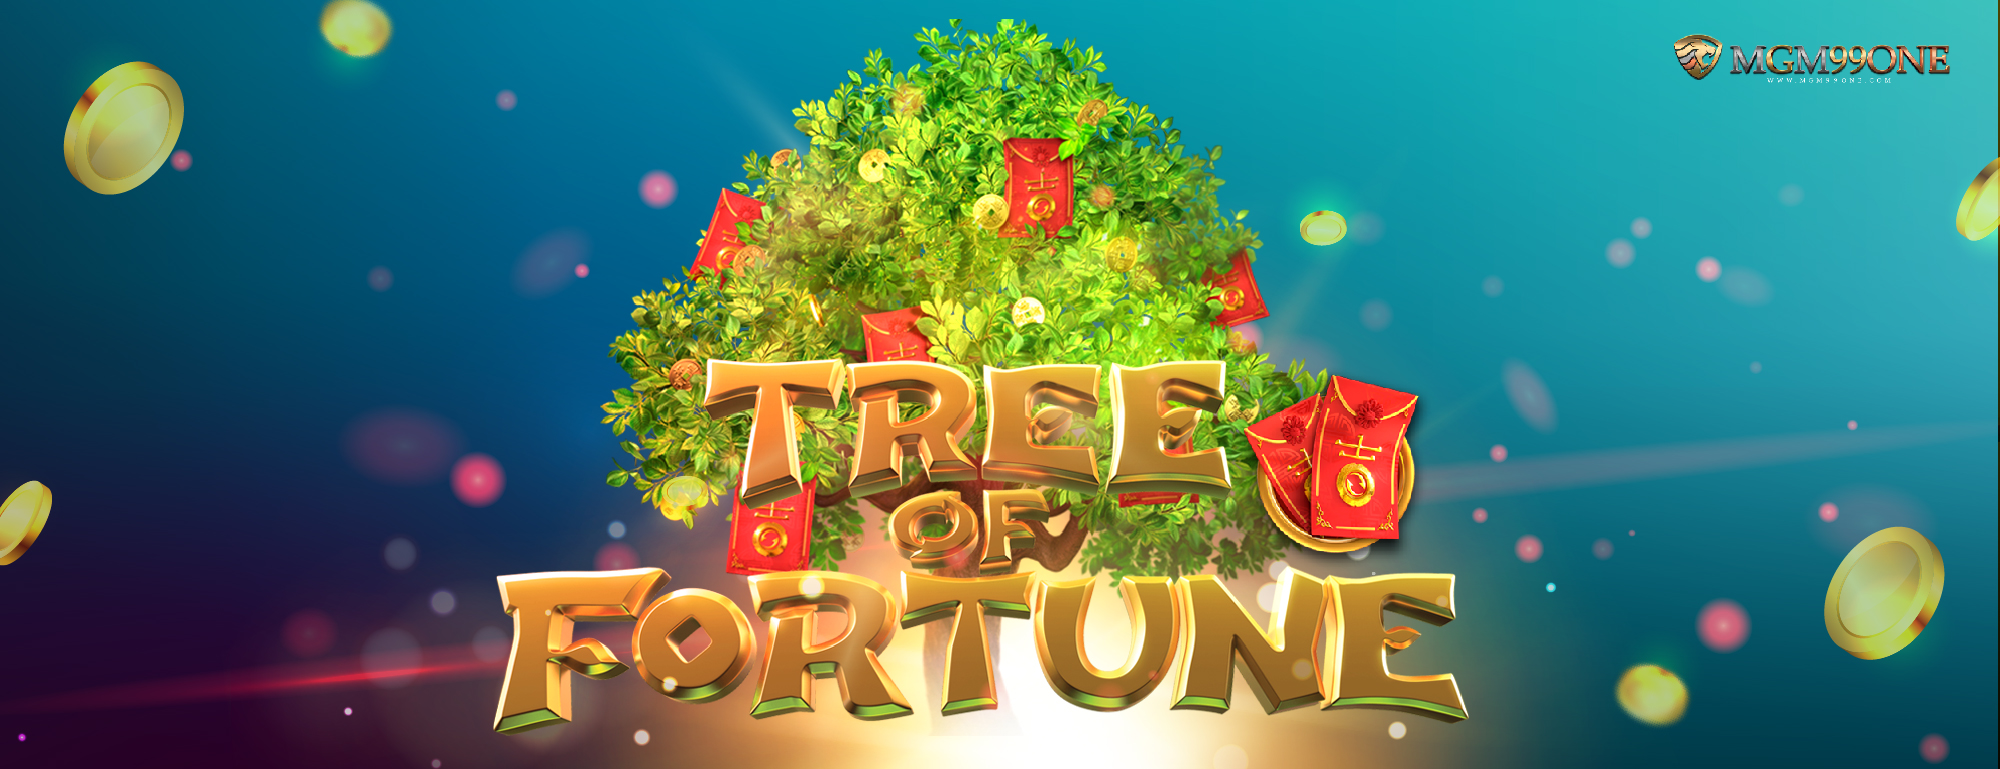 1Tree-of-fortune-1-01